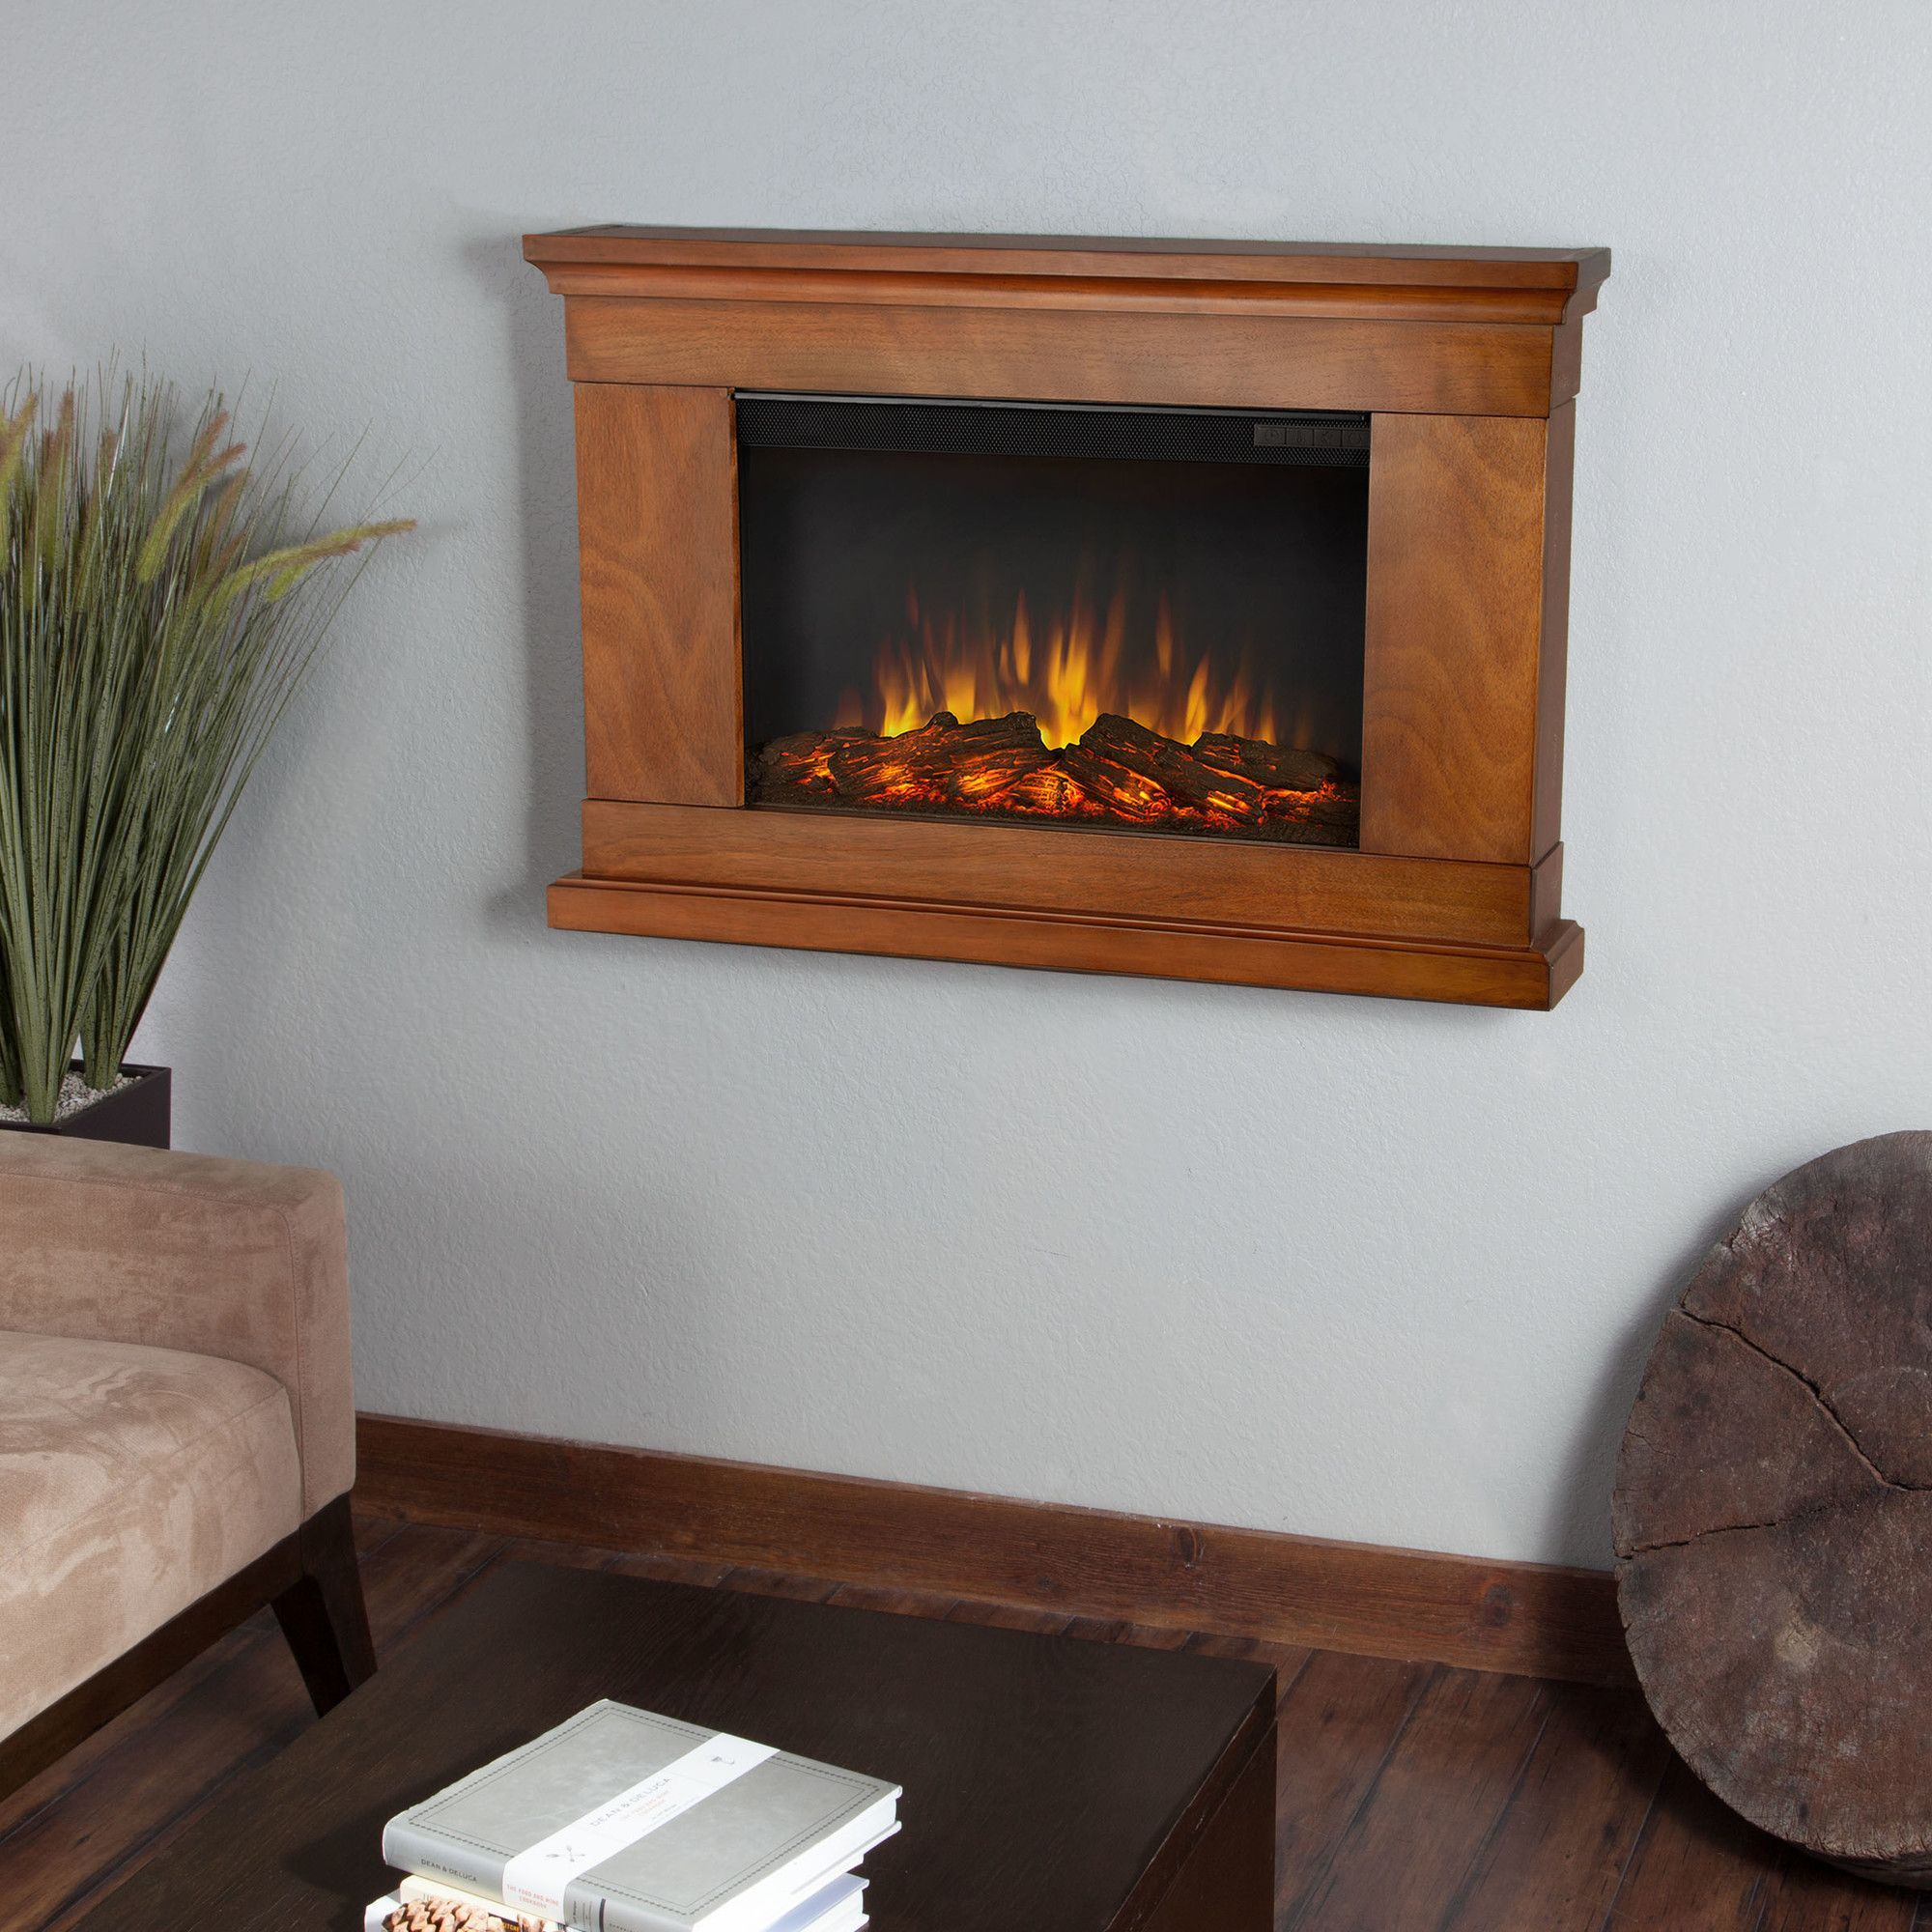 Ordinary Slim Wall Mount Electric Fireplace Part - 11: Slim Wall Mount Electric Fireplace